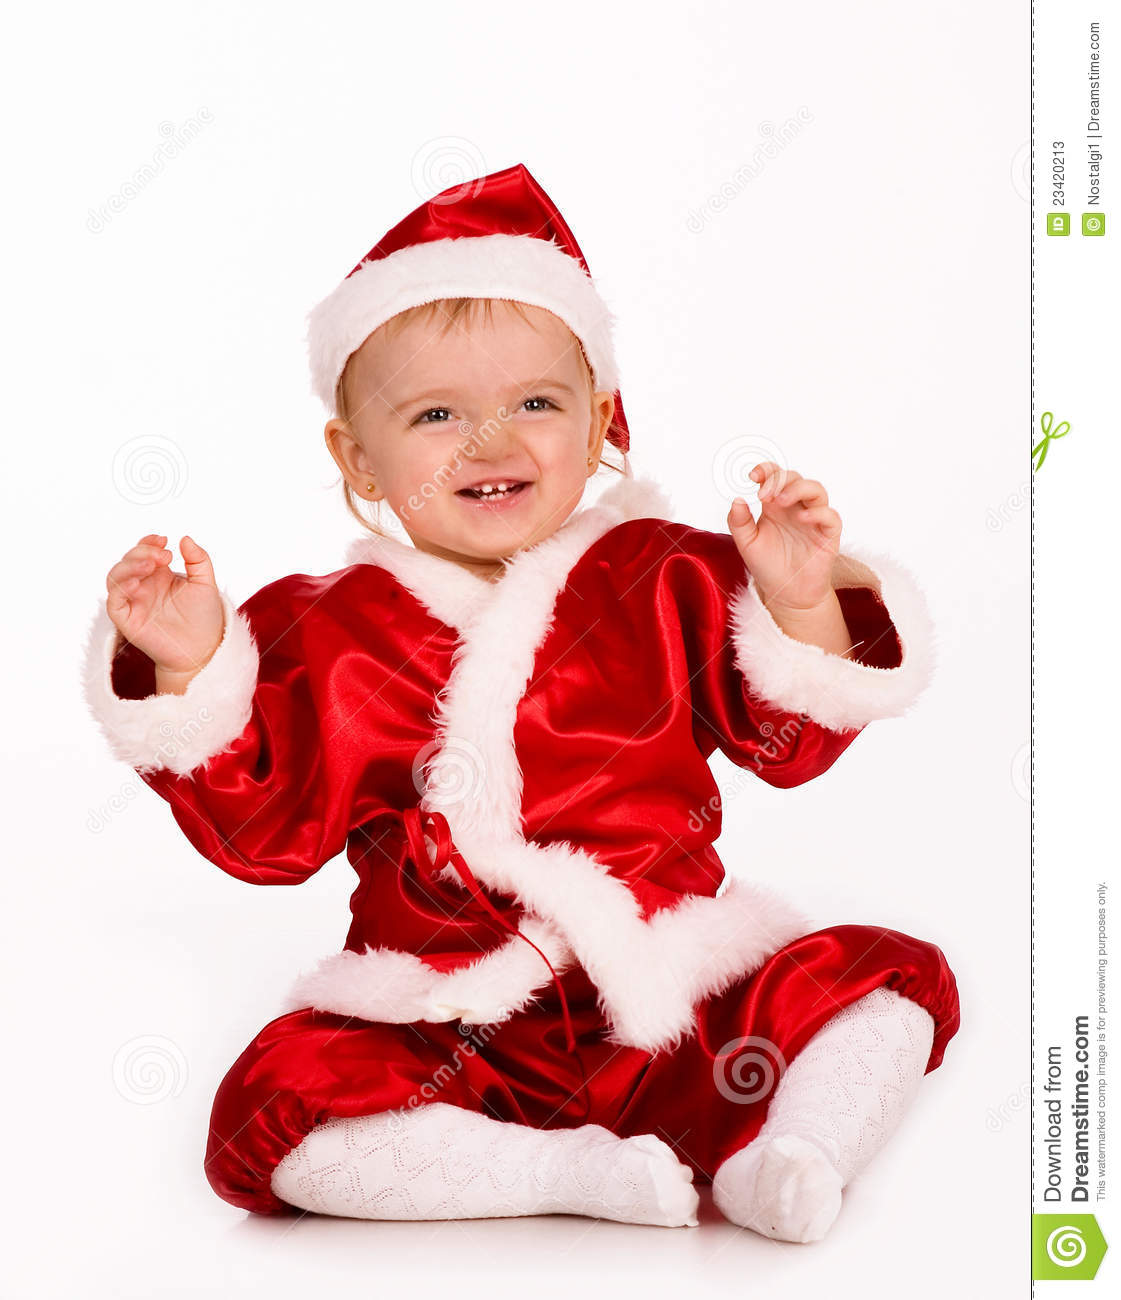 Cute baby dressed as santa claus stock image